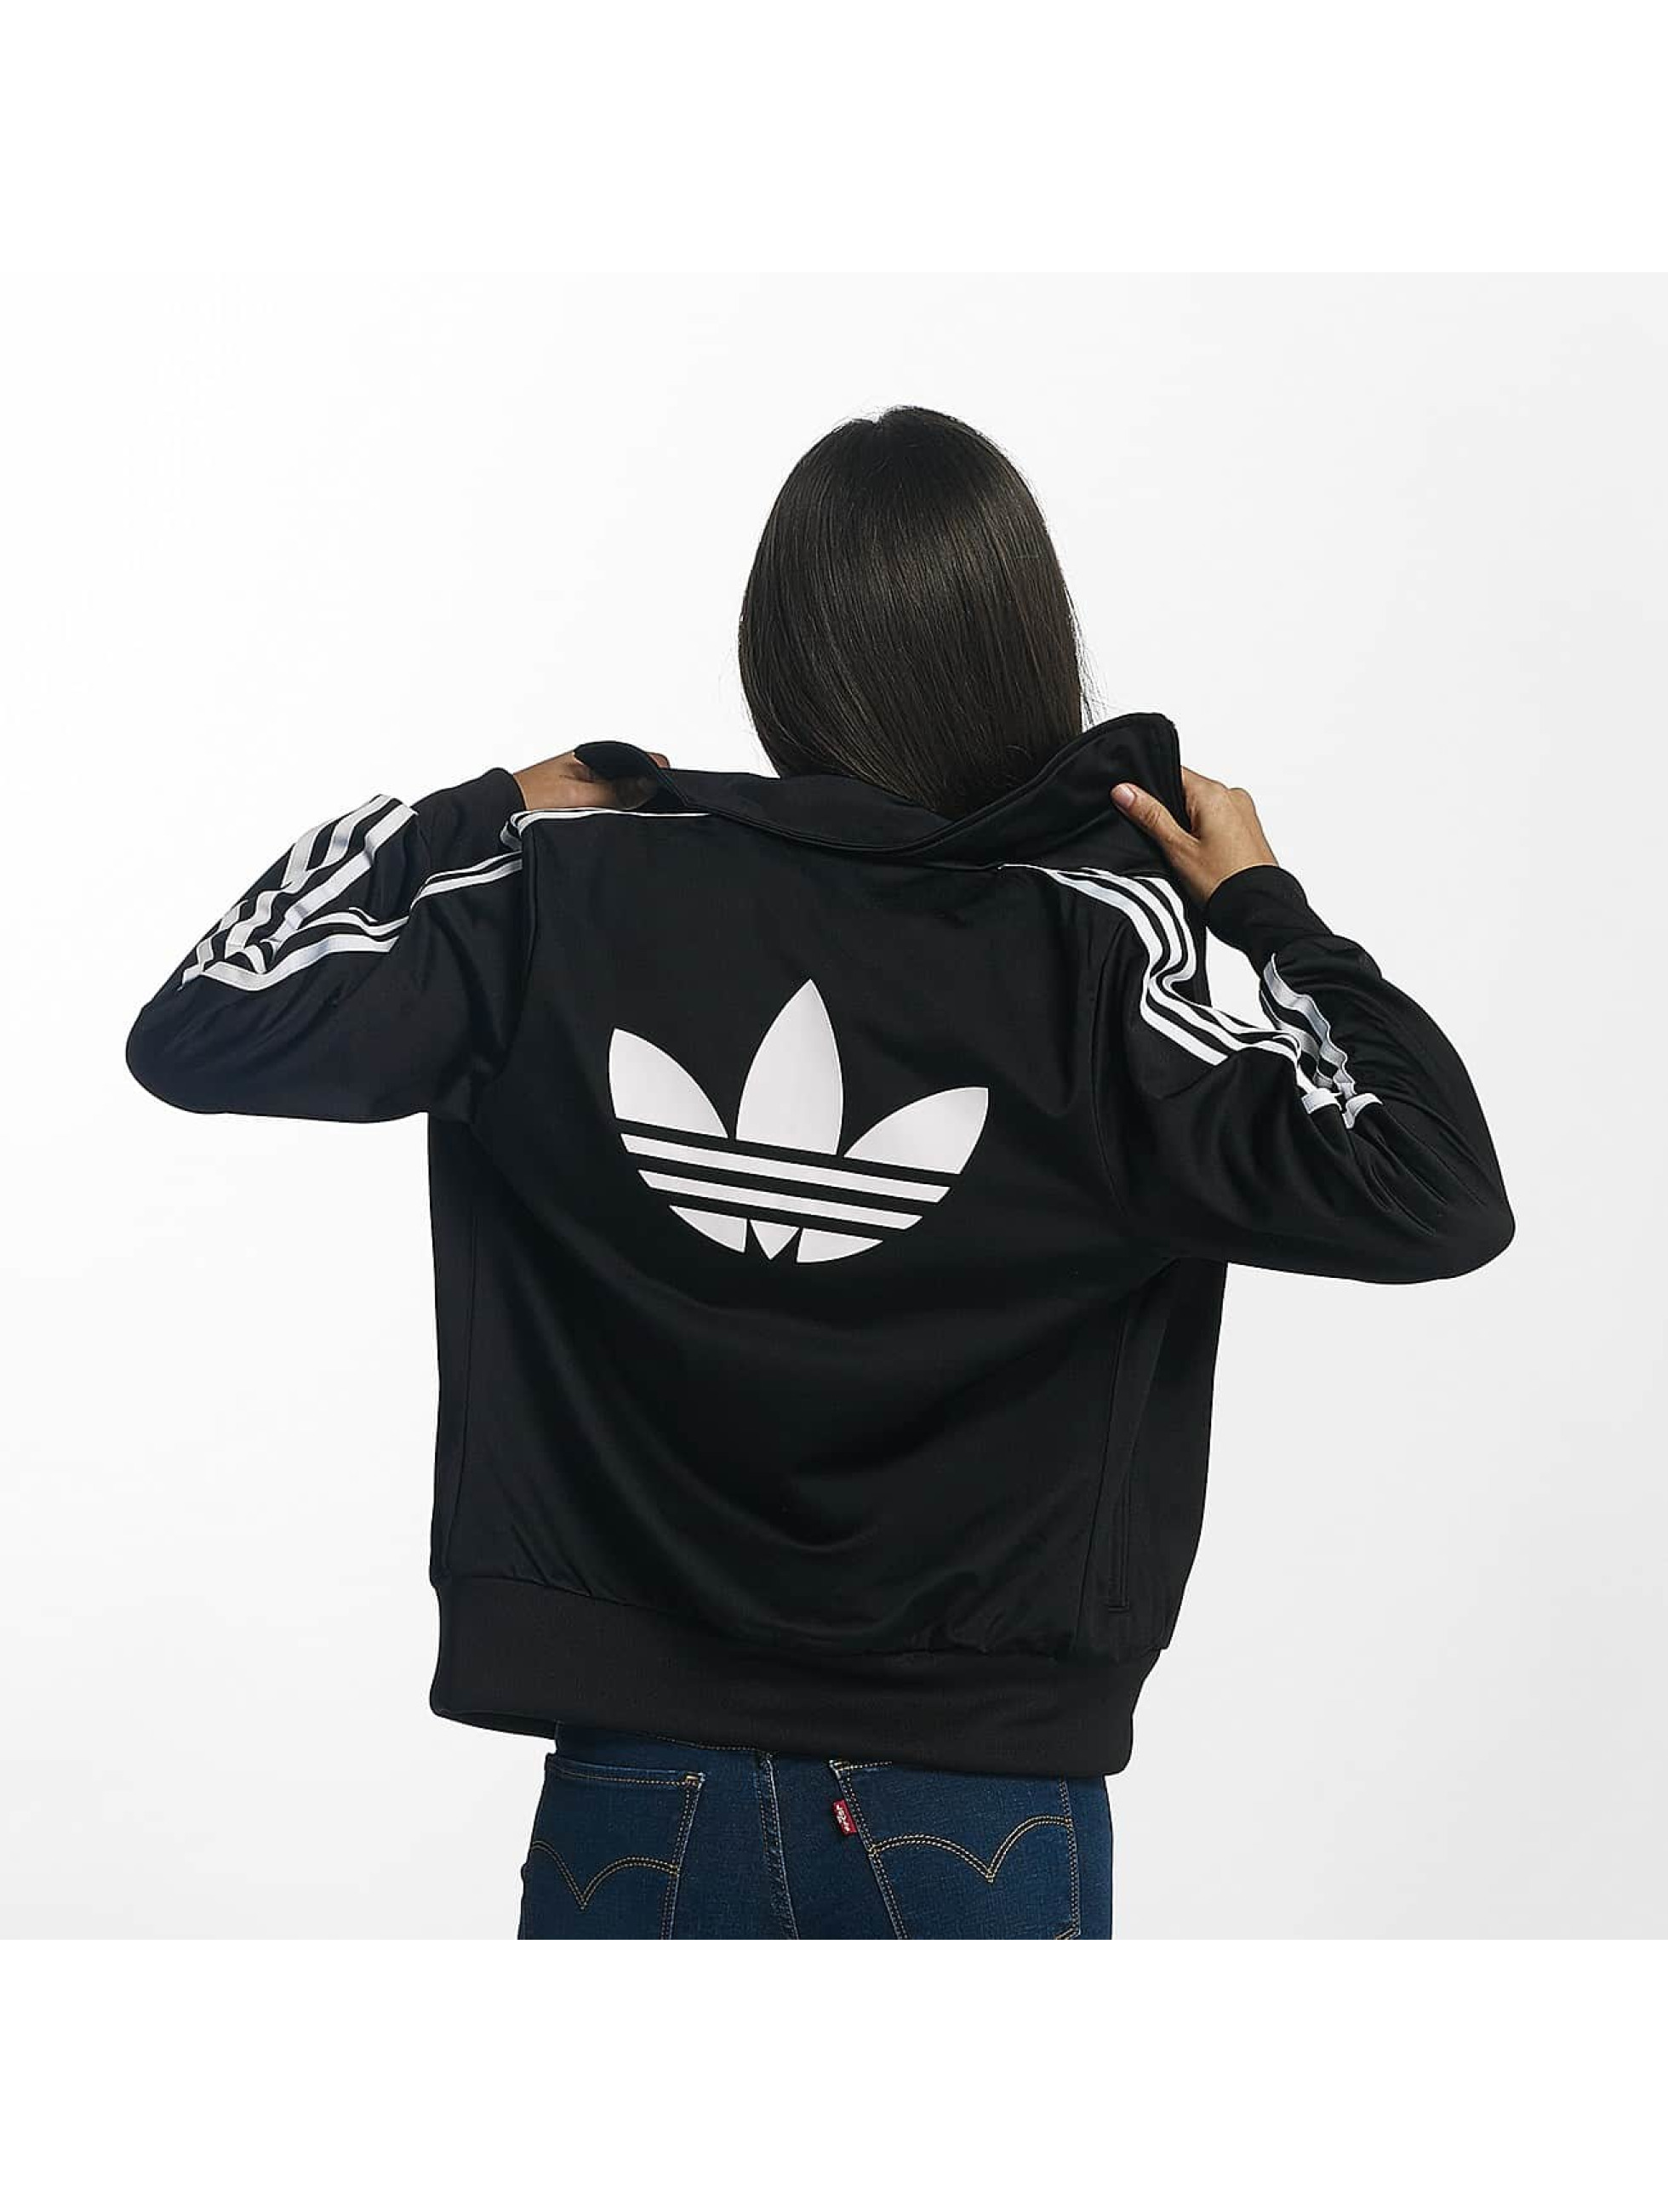 adidas originals Overgangsjakker Firebird Track Top sort